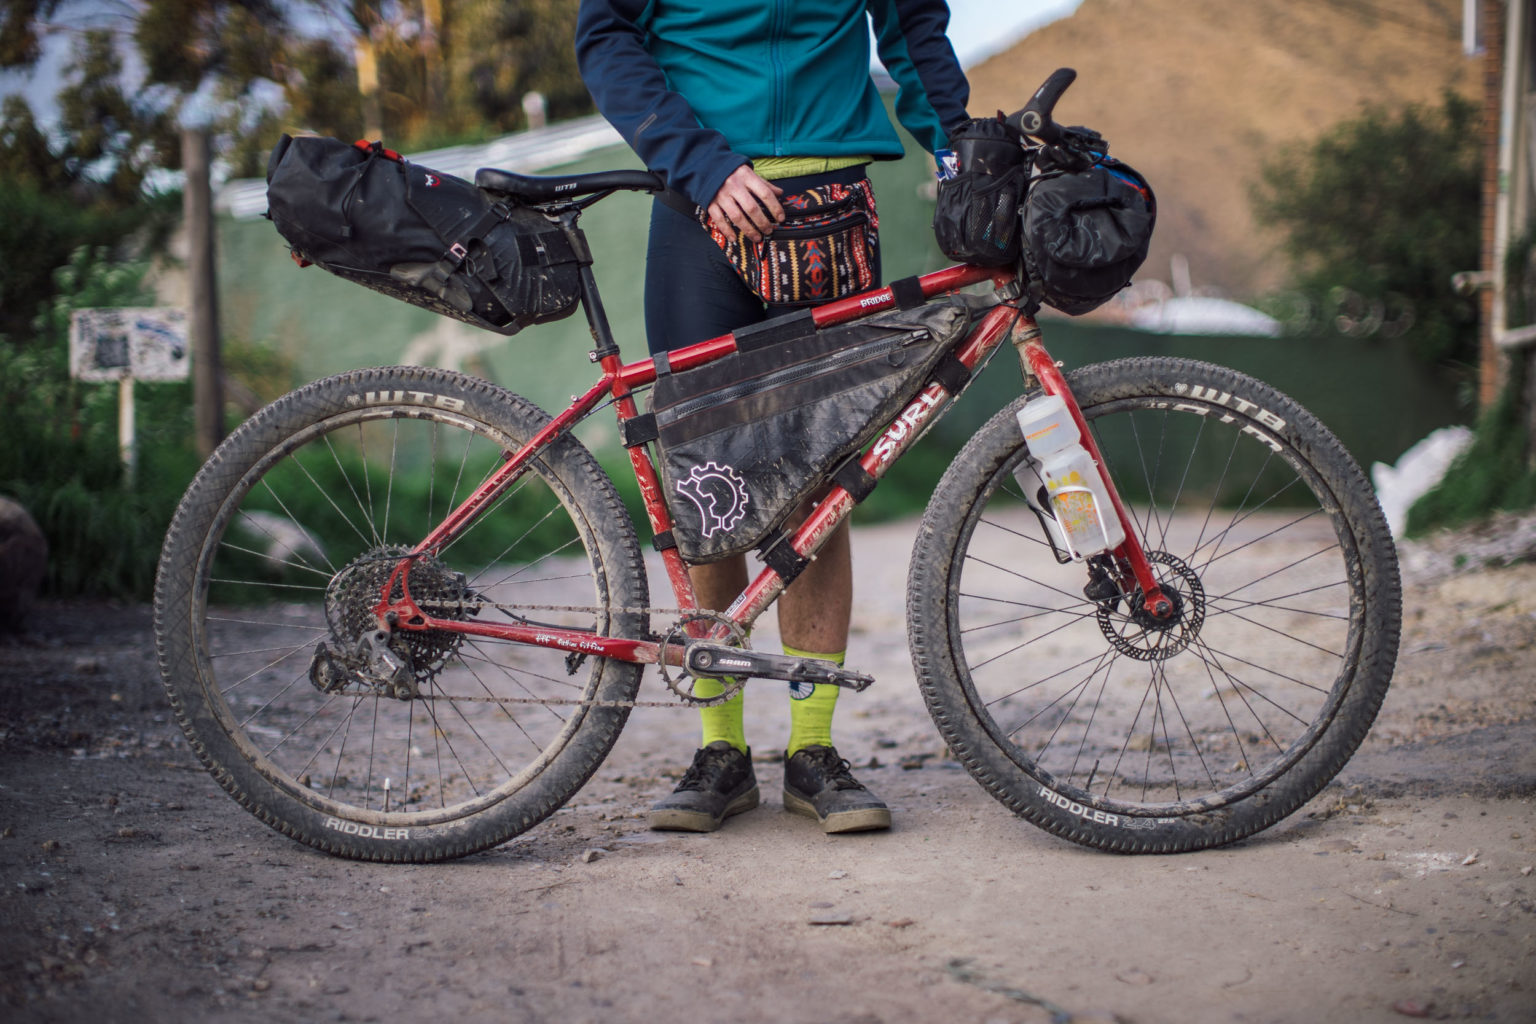 Bikepacking.com gives a nod to the Surly Bridge Club